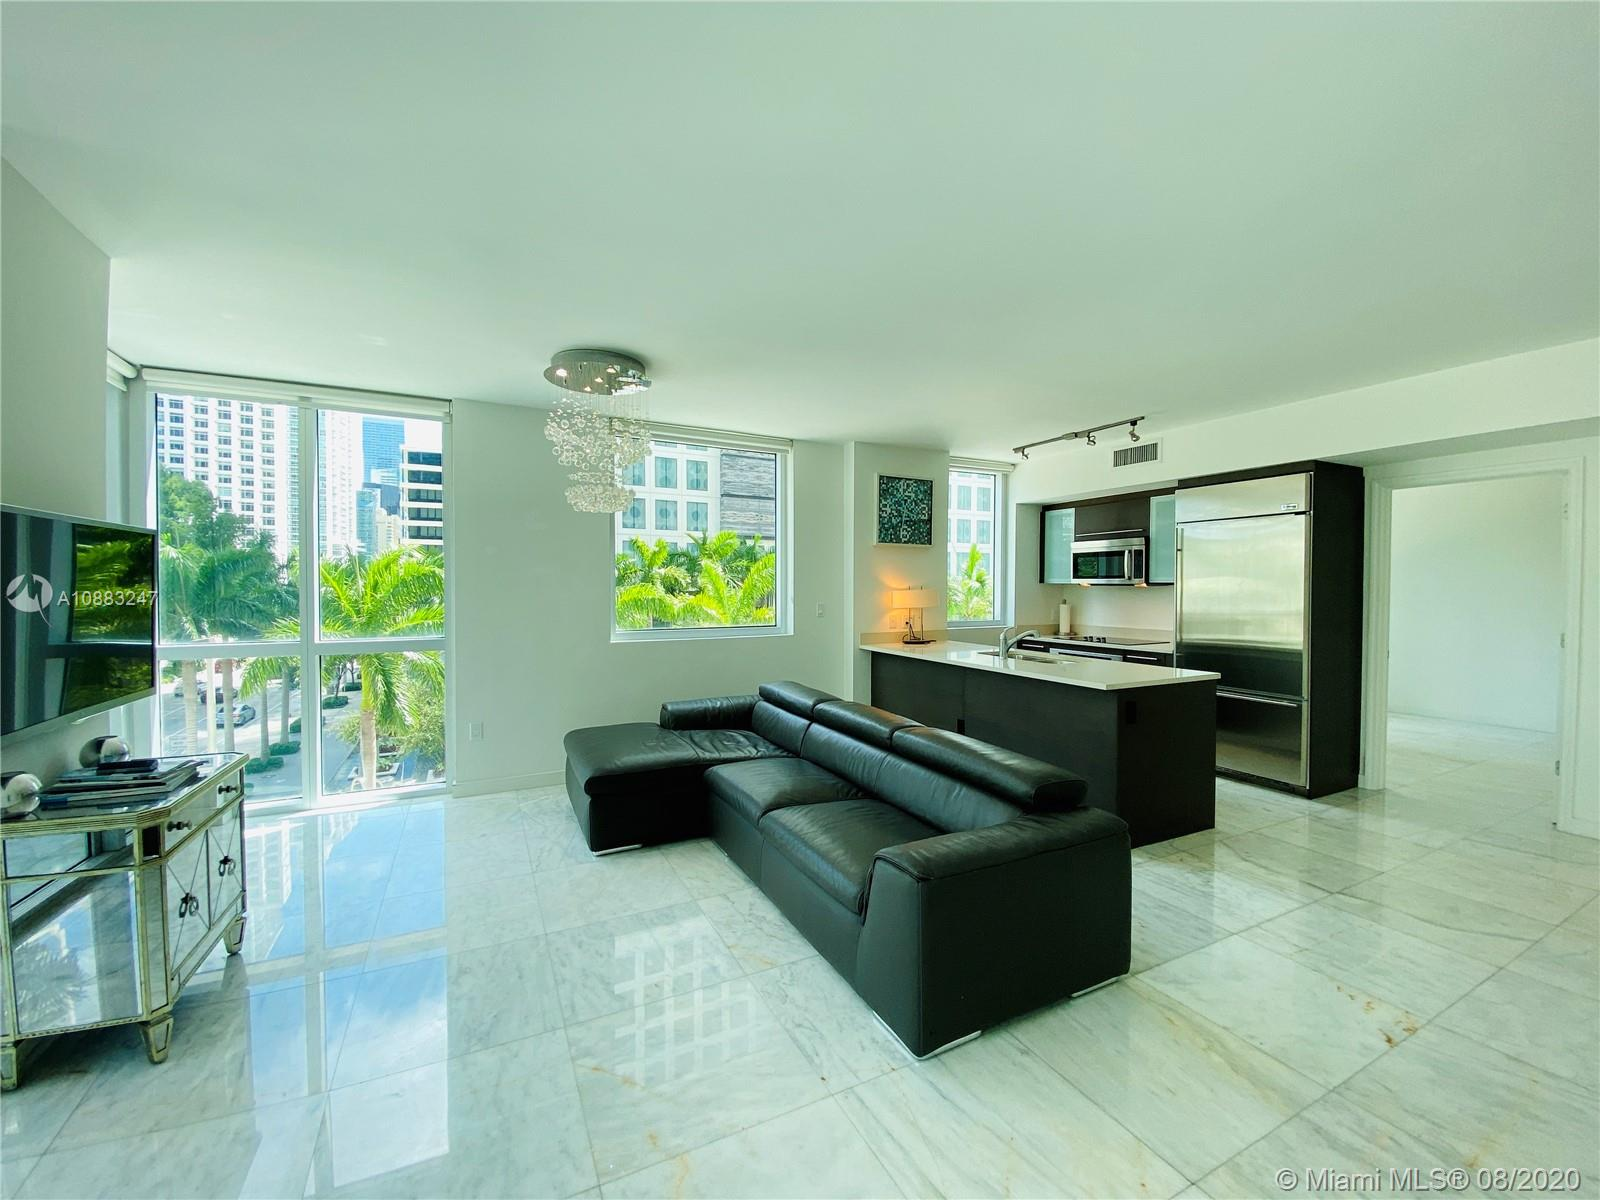 MOVE IN JUST WITH: 1ST MONTH RENT & 1 SEC. DEPOSIT! GORGEOUS 2BR/2BA SPACIOUS CORNER UNIT IN THE HEART OF BRICKELL AVE. EUROPEAN OPEN STYLE KITCHEN, TOP OF THE LINE APPLIANCES. OPEN & SPACIOUS FLOORPLAN, MARBLE FLOORS THROUGHOUT. PARKING ON SAME FLOOR. ENJOY THE UNIQUE AMENITIES: 3 SPECTACULAR POOLS, AND A 42nd FLOOR WITH PANORAMIC VIEW POOL. STATE OF THE ART FITNESS CENTER, WINE CELLAR ROOM, SPORT BAR ROOM, UNIQUE THEATER, WALKING DISTANCE OF MARY BRICKELL VILLAGE AND AL THE FINANCIAL DISTRICT & RESTAURANTS. BASIC CABLE & INTERNET INCLUDED.